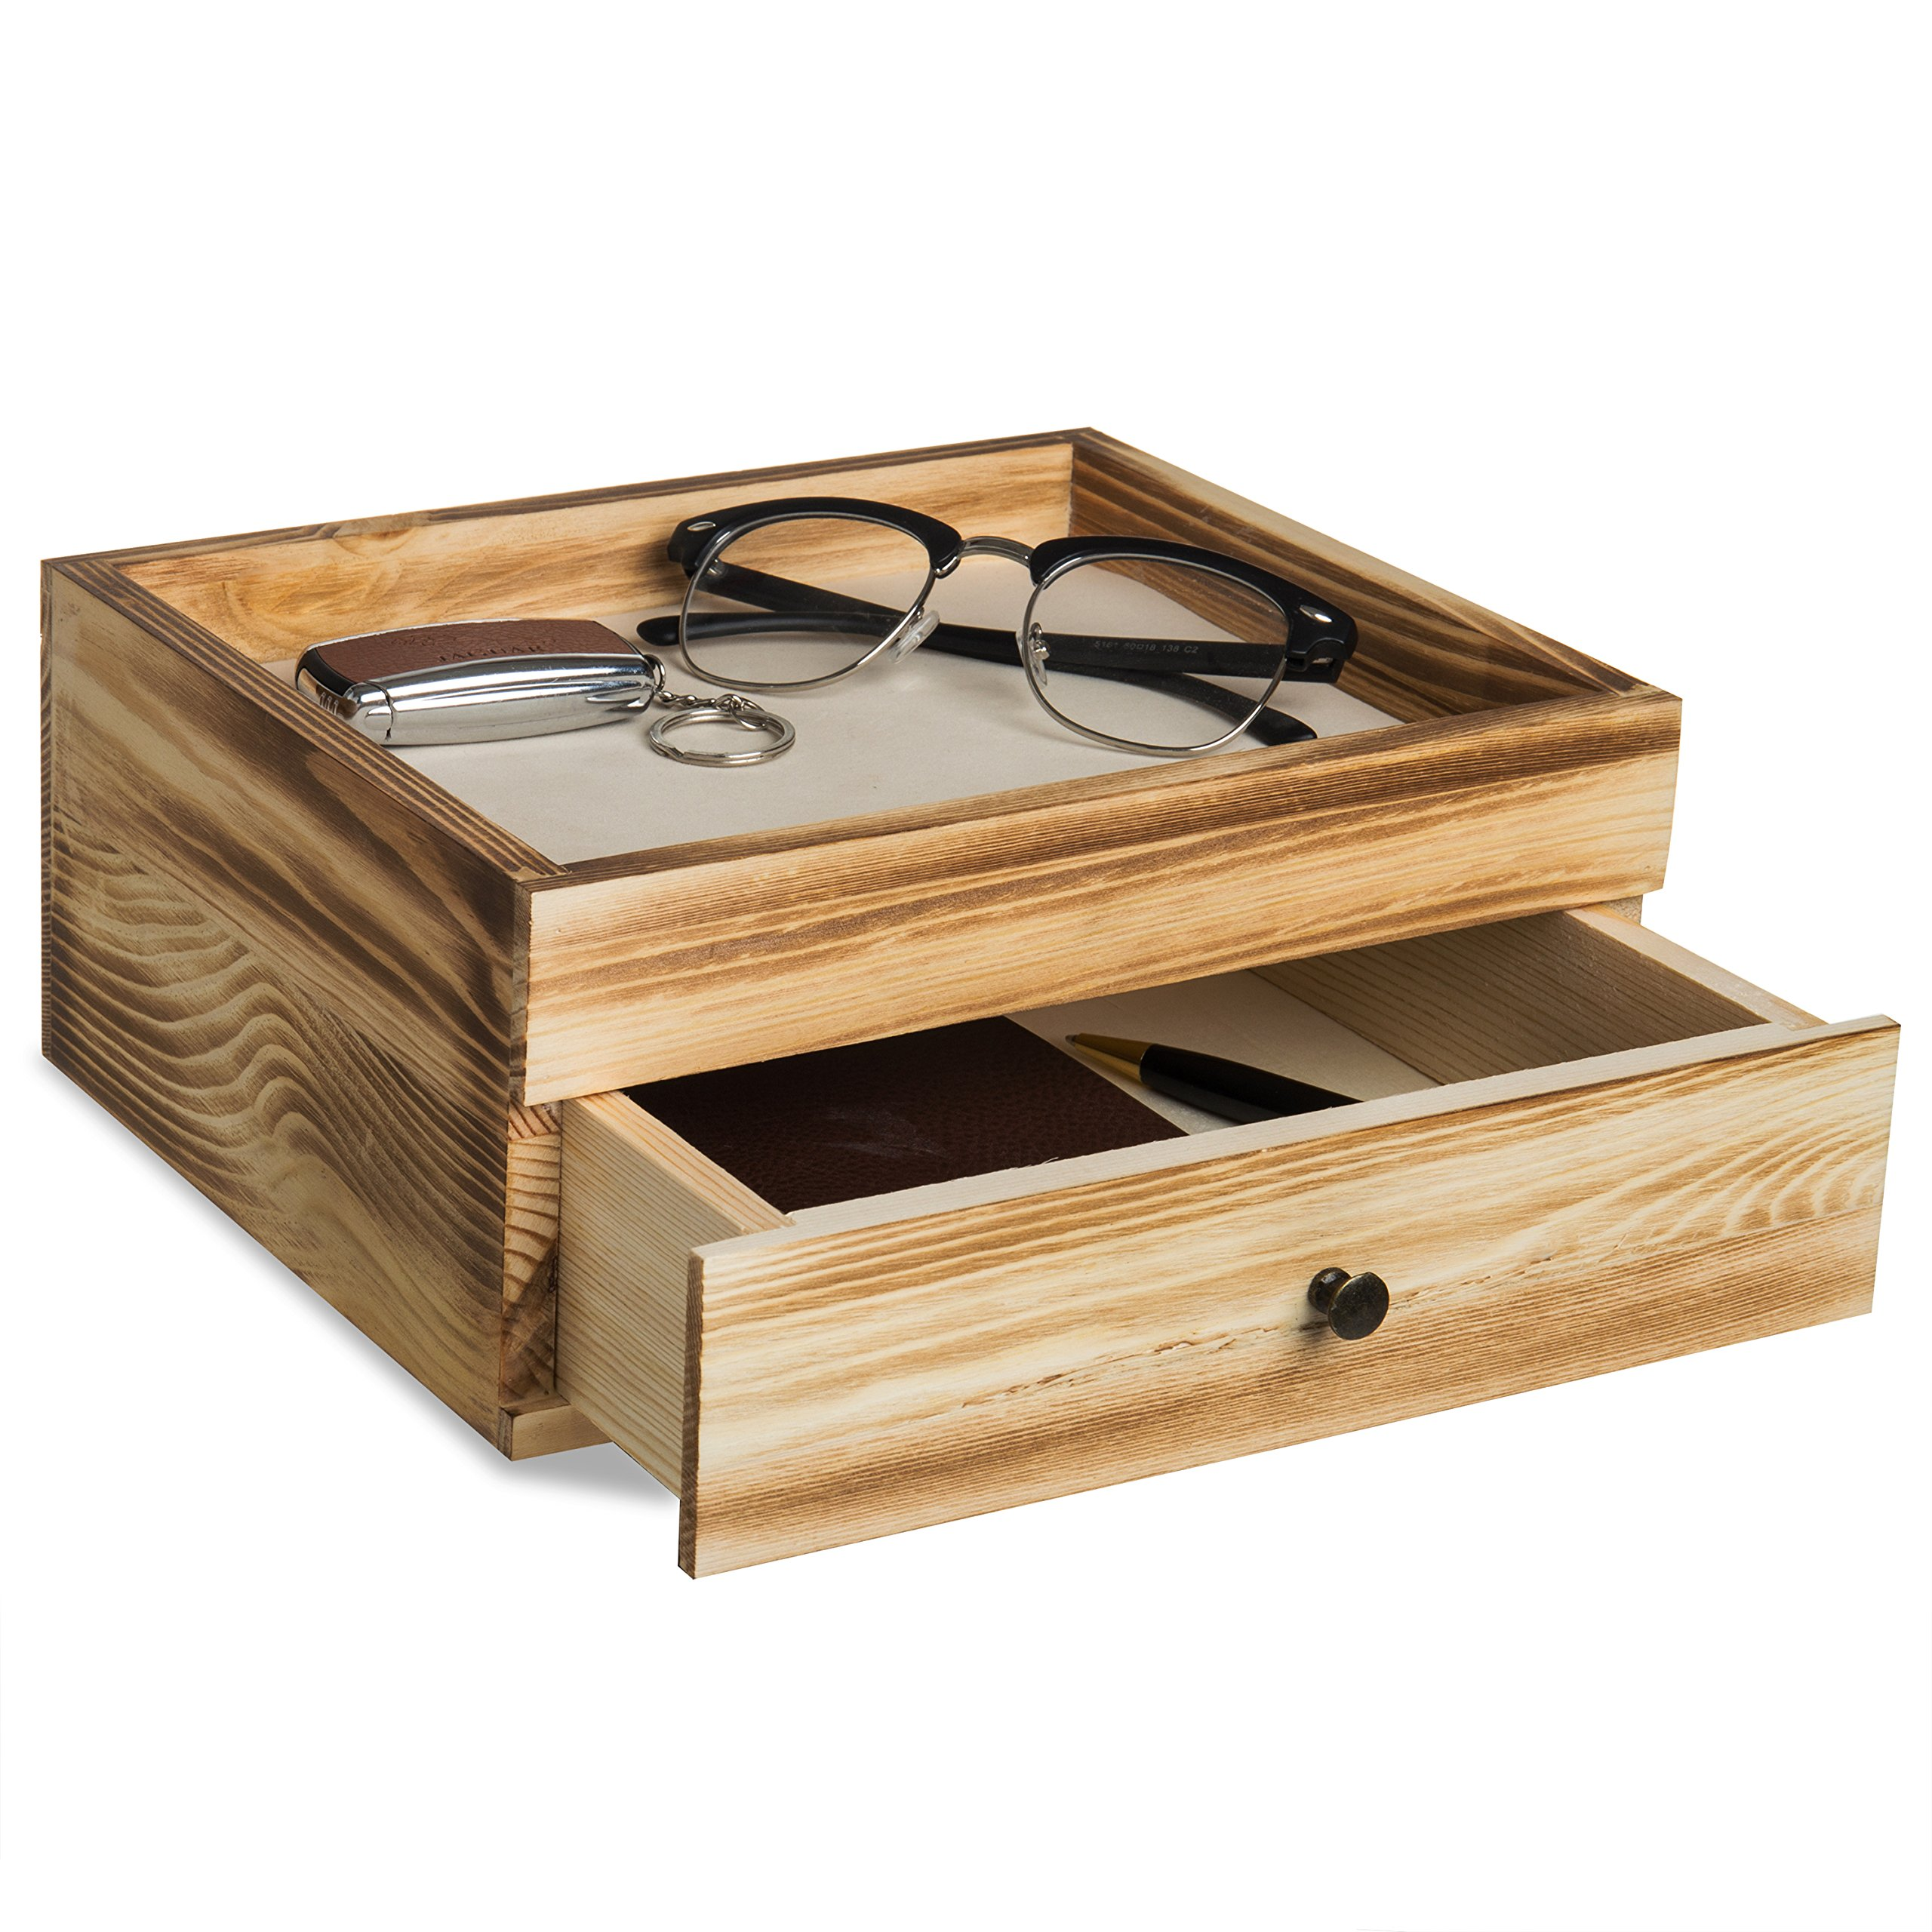 Rustic Brown Wood Desktop Organizer with Pullout Drawer, Tabletop Accessories Valet Tray